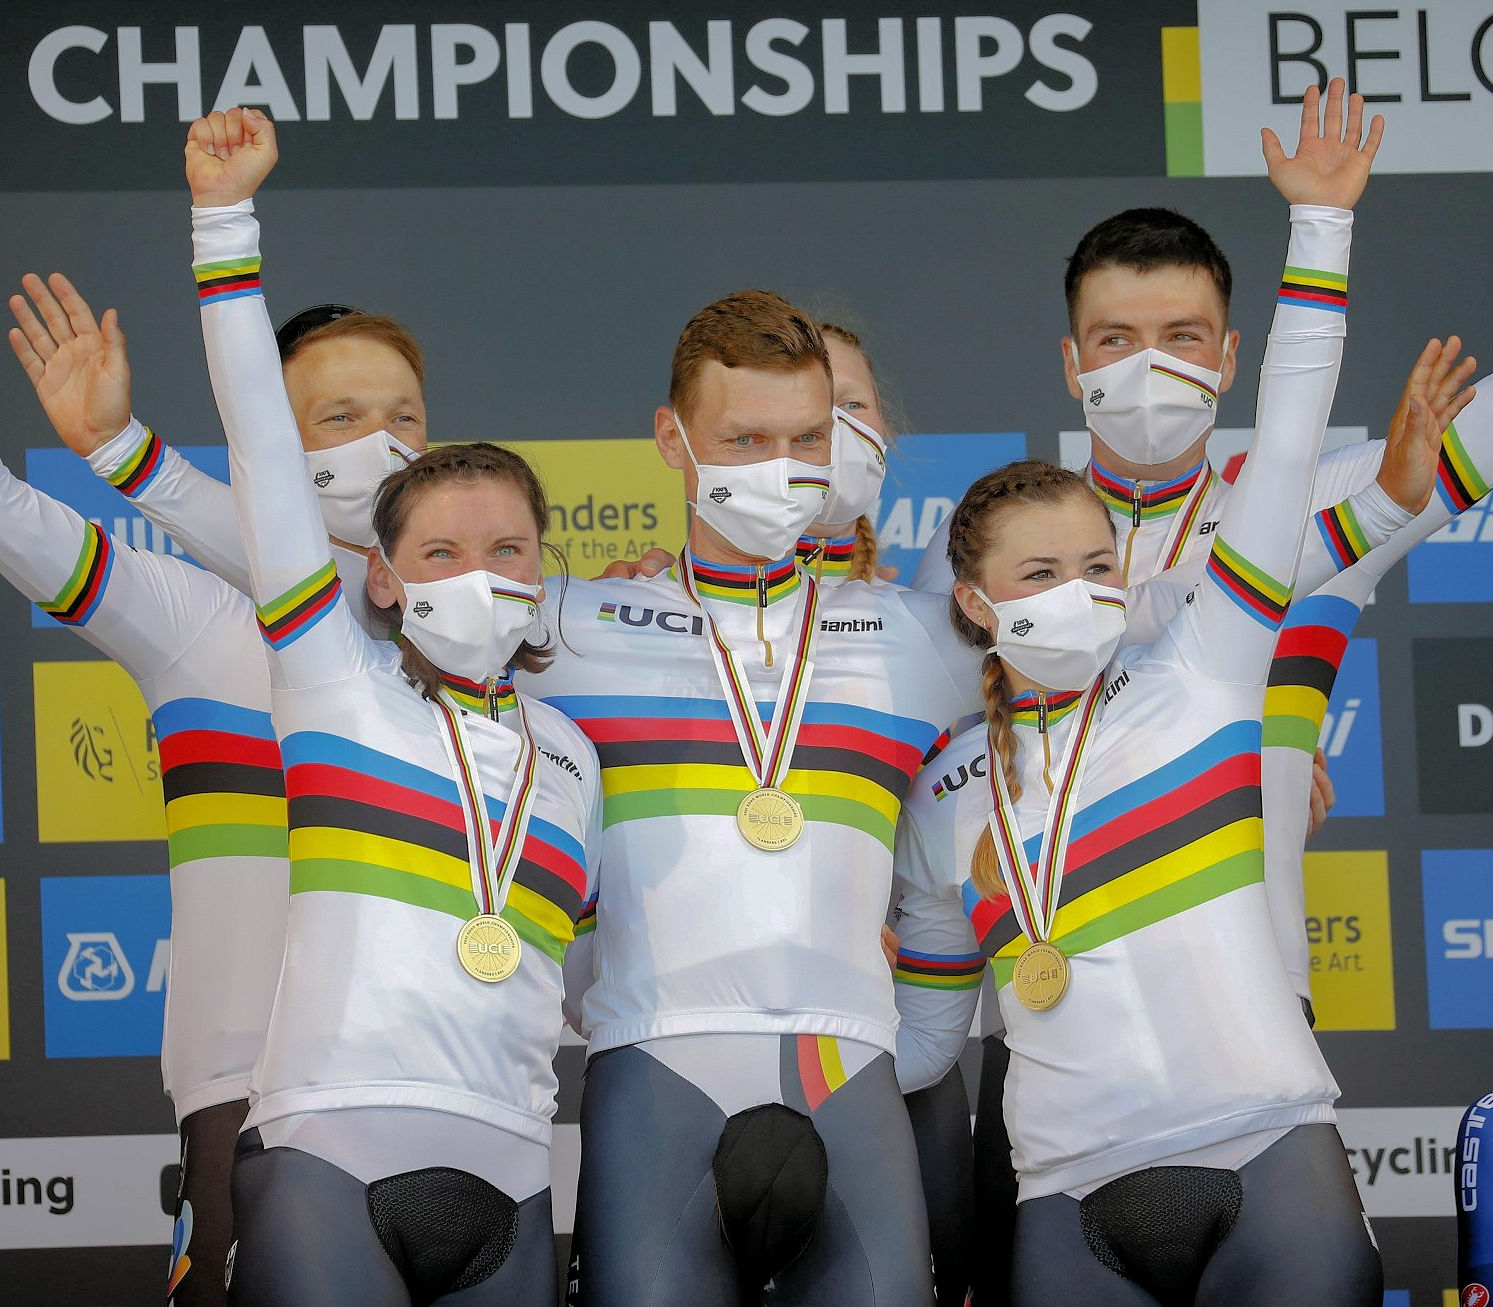 Mixed relay - World Cycling Championships 2021 Flanders: Germany takes gold in Mixed Relay